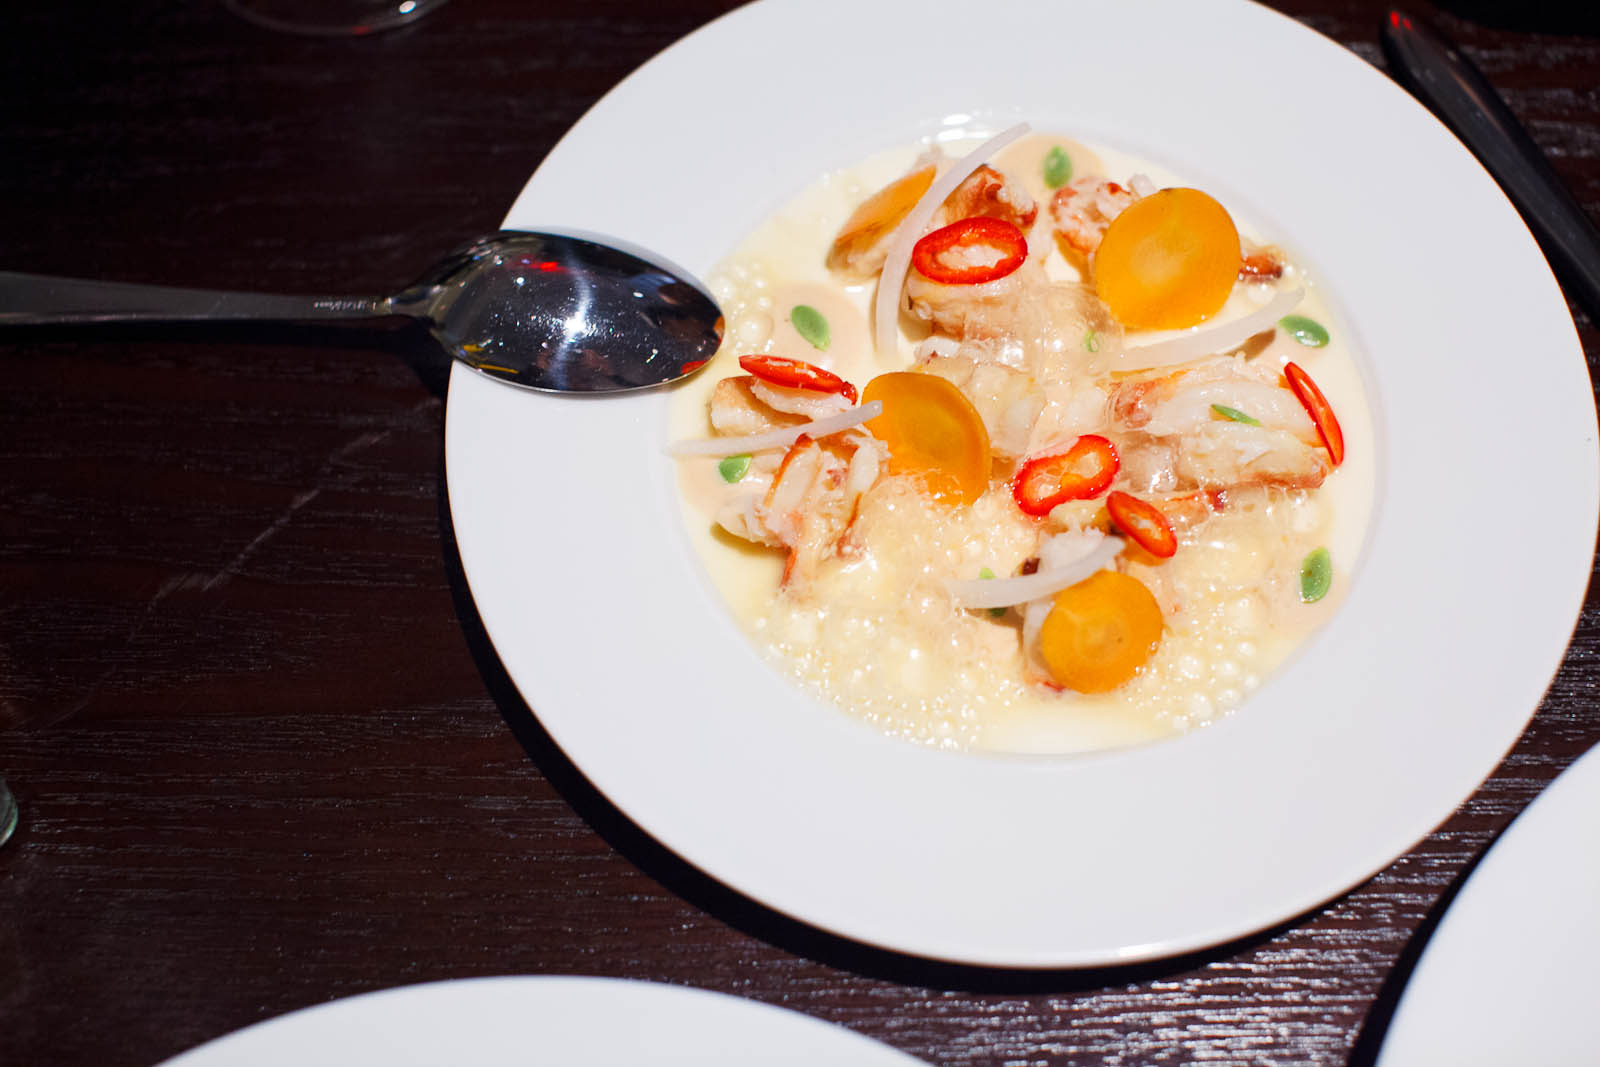 Peeky Toe Crab with Parsnip Juice,Crab Flan and Smoked Cashew S